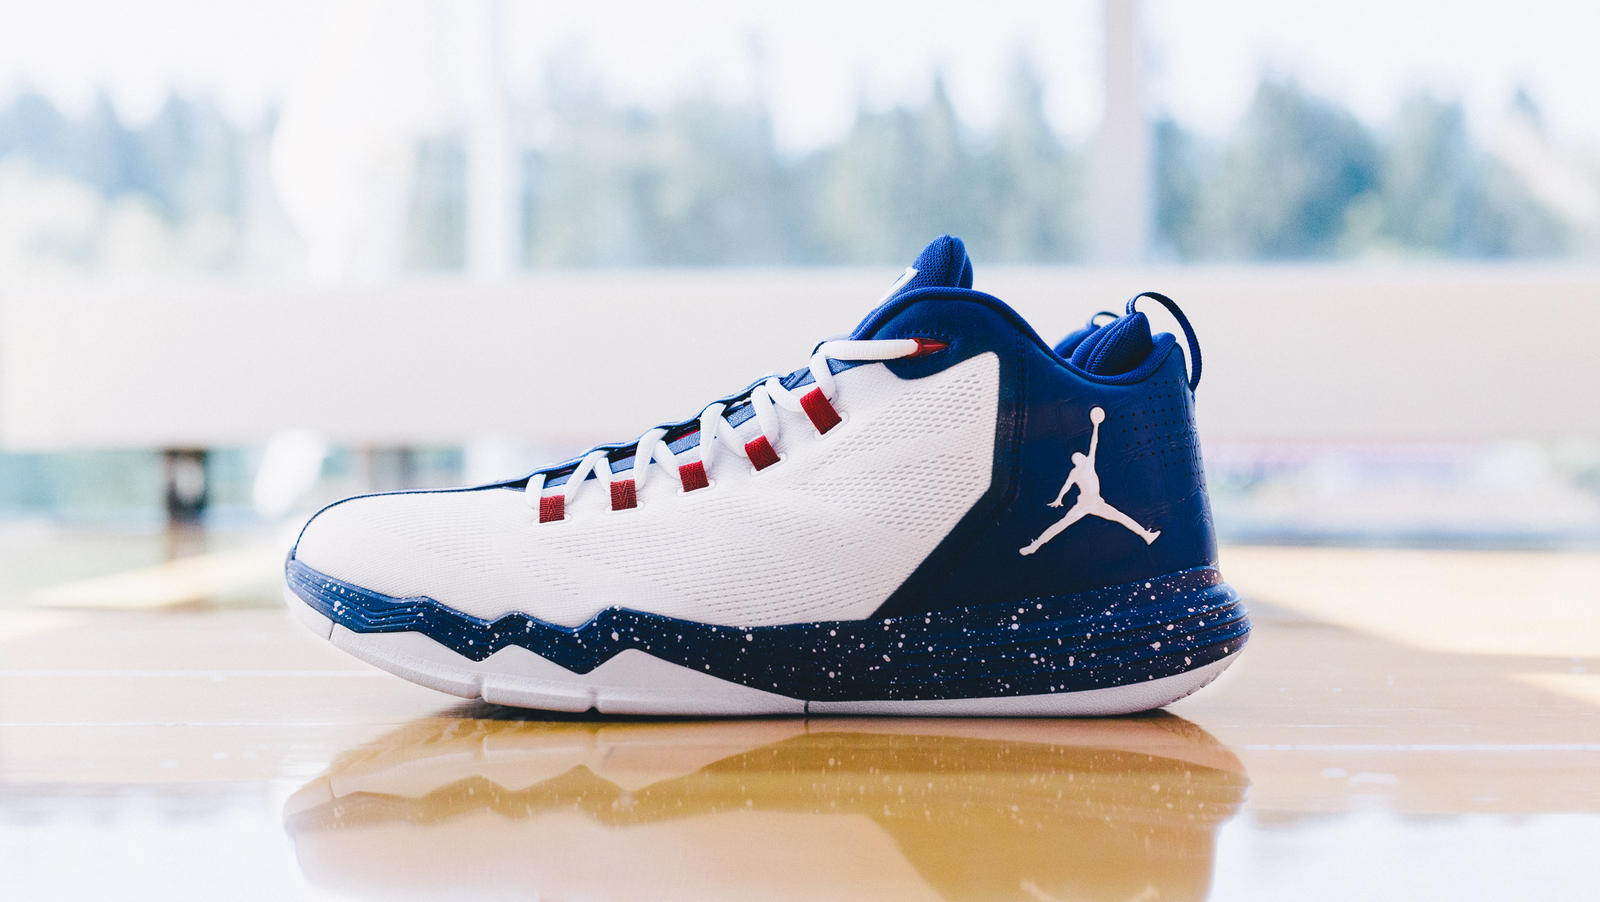 Jordan cp3 xixi ae pe white blue native 1600